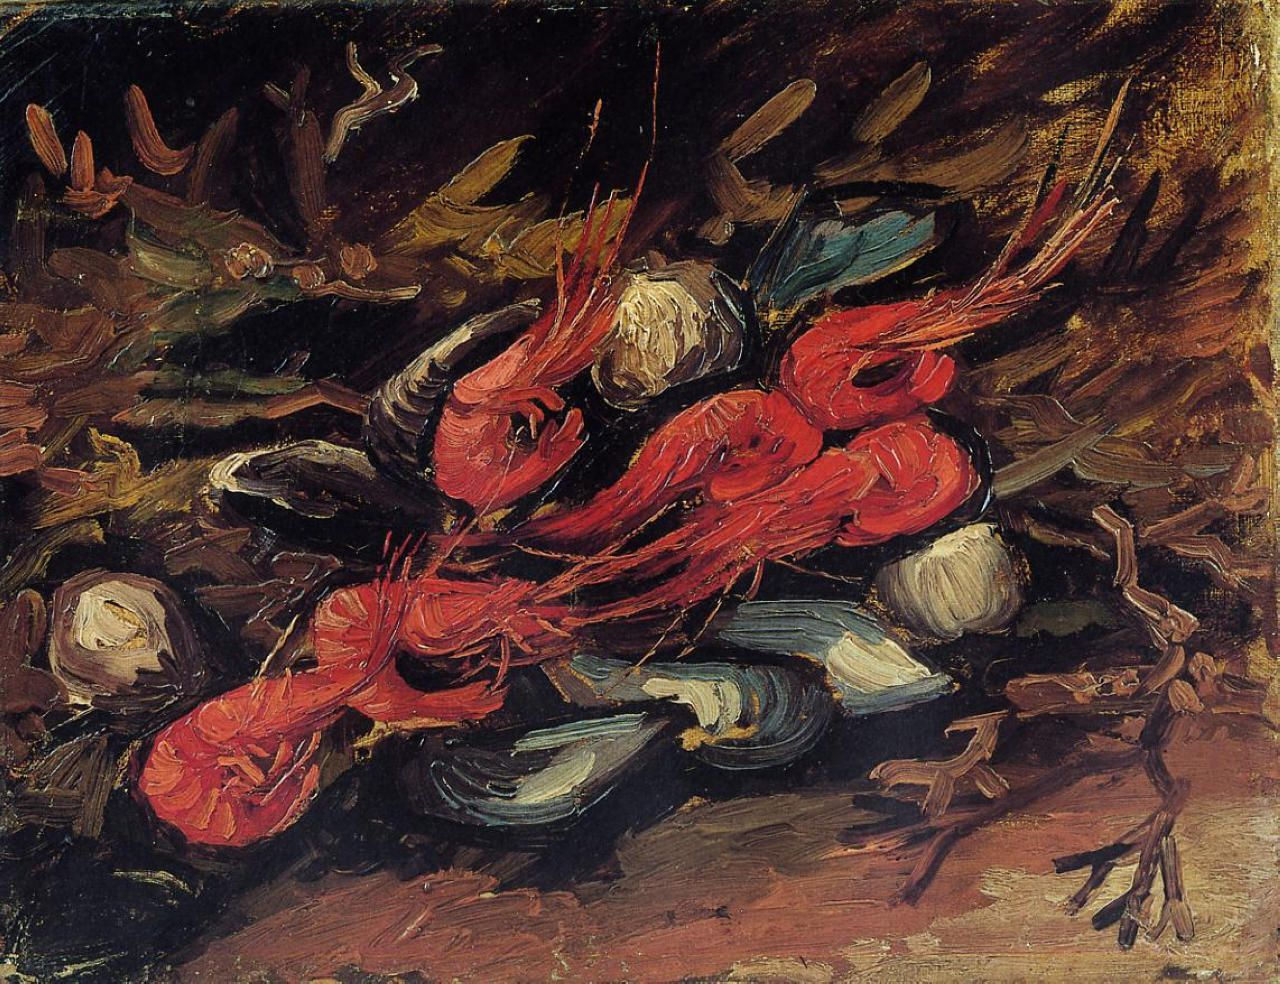 Still Life With Mussels And Shrimp Vincent Van Gogh 1886 Van Gogh Museum